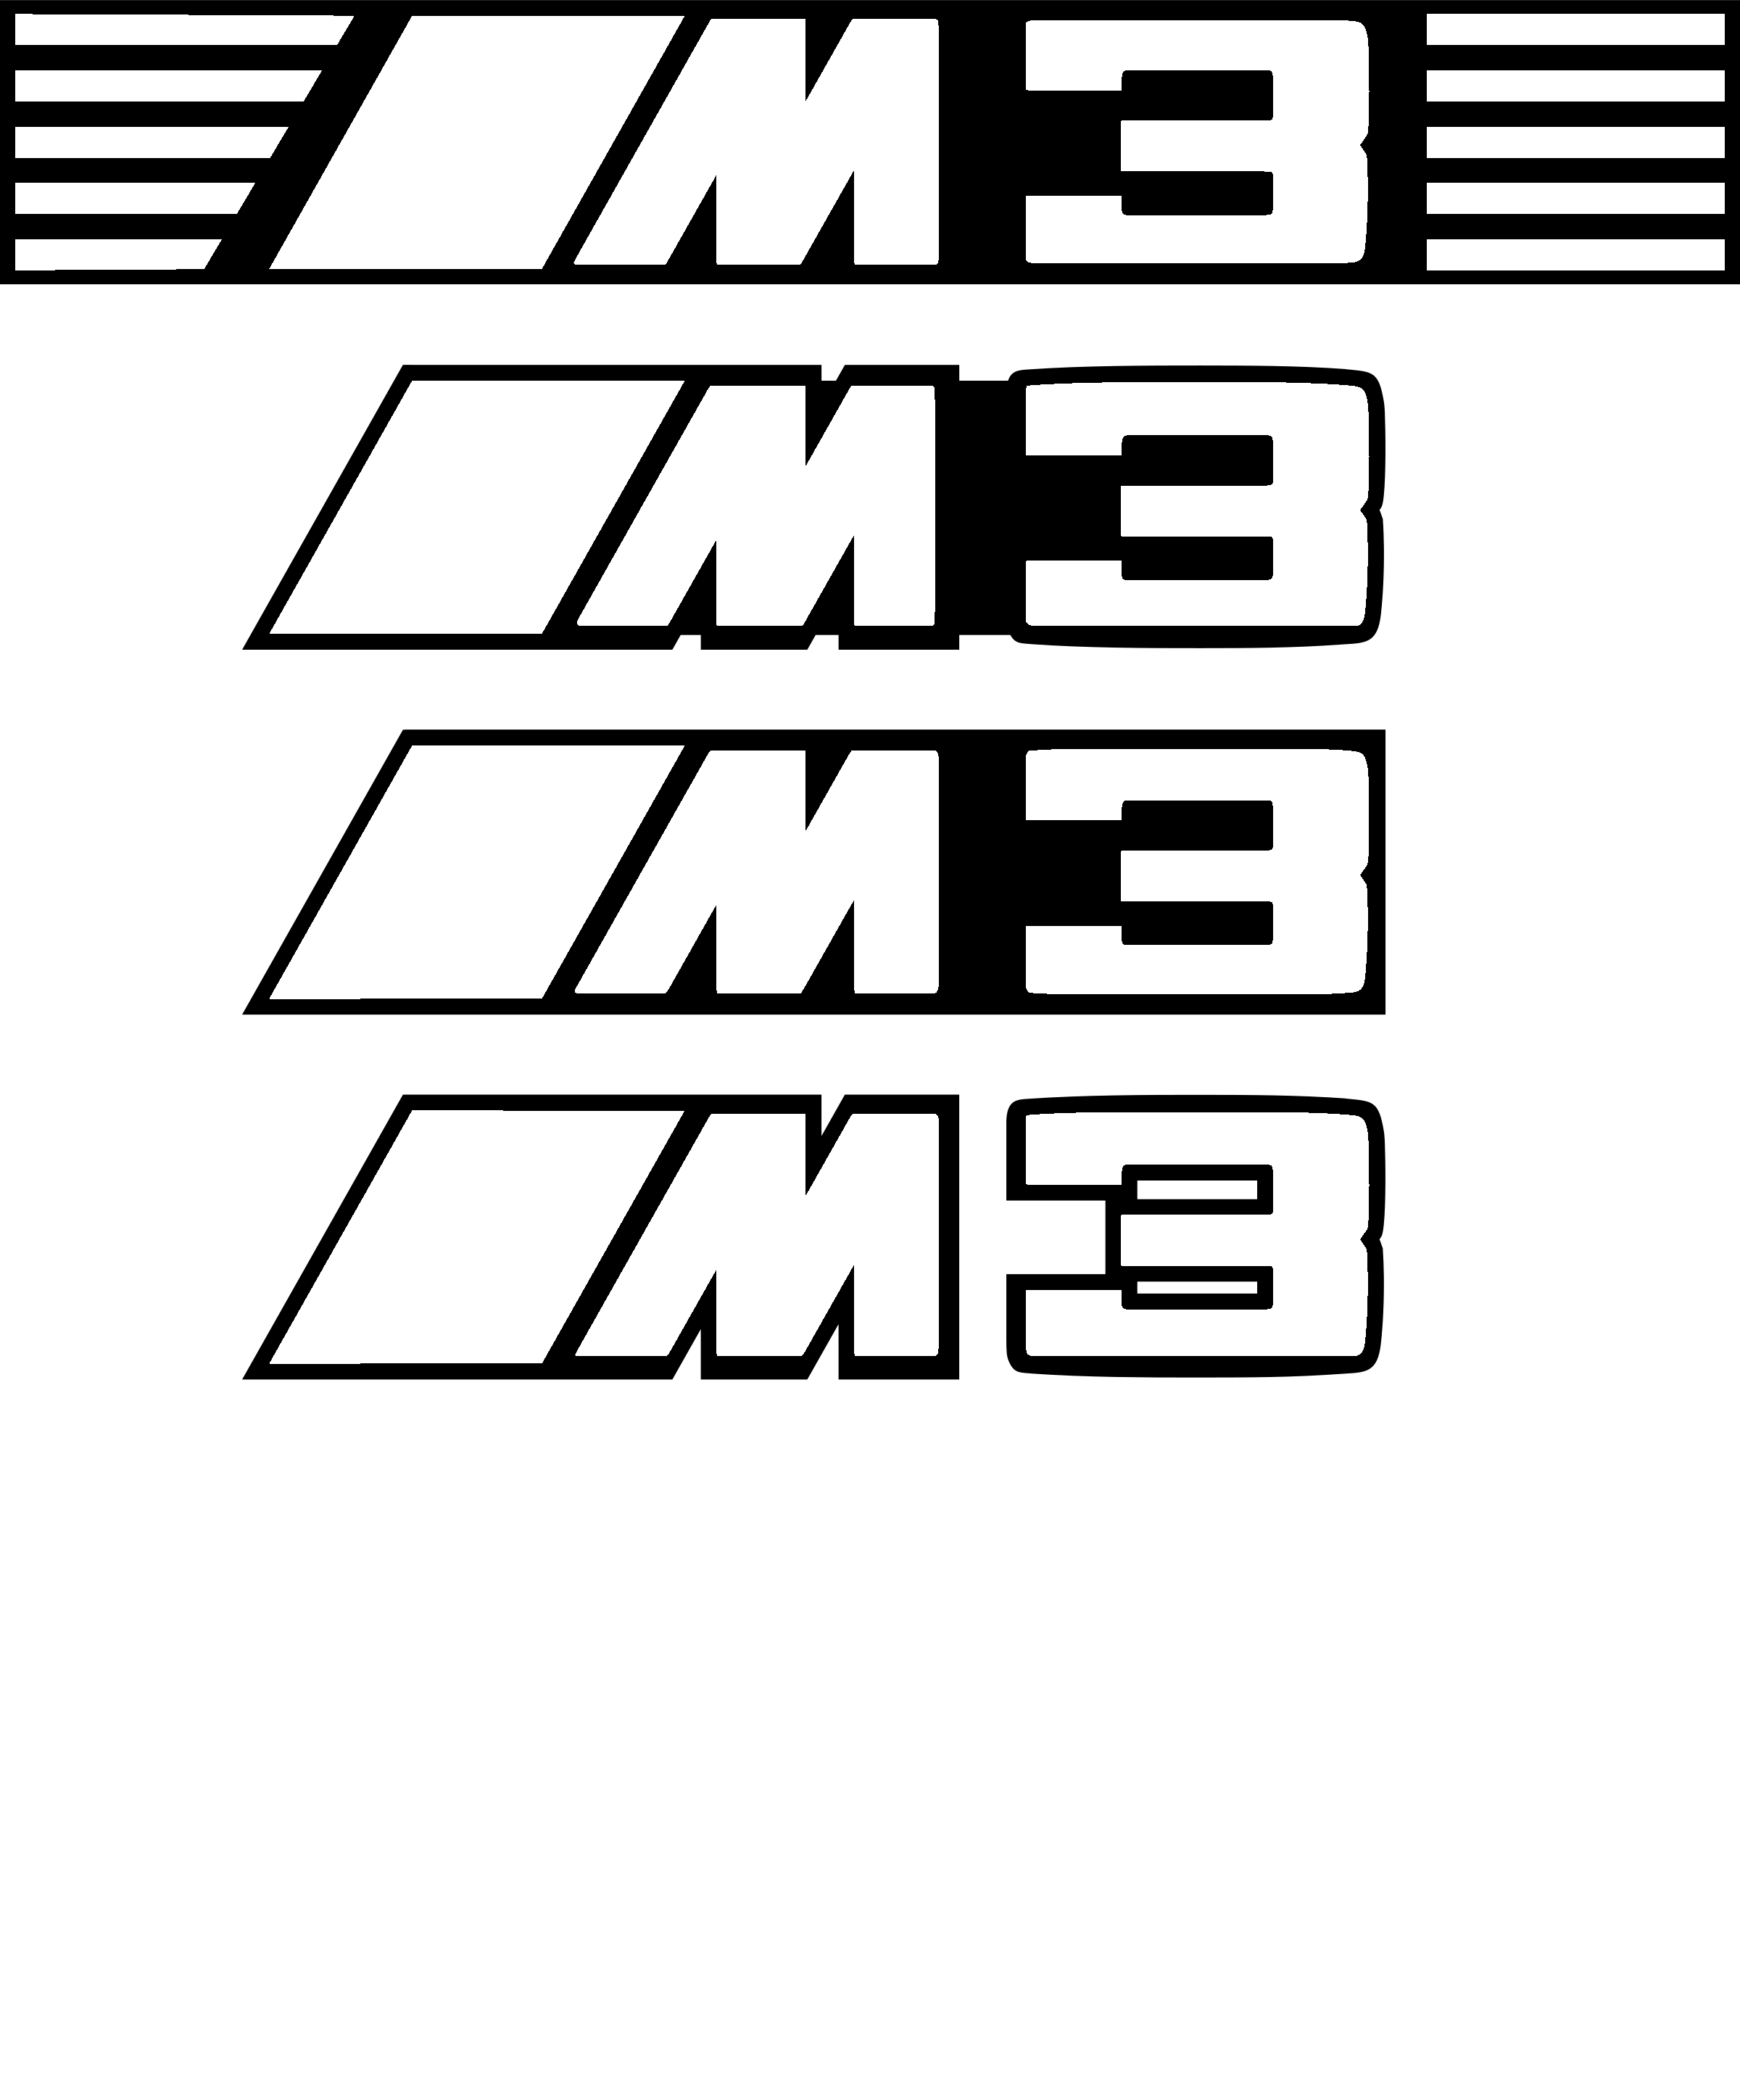 Black and White BMW M3 Logo - BMW M3 Logo PNG Transparent & SVG Vector - Freebie Supply